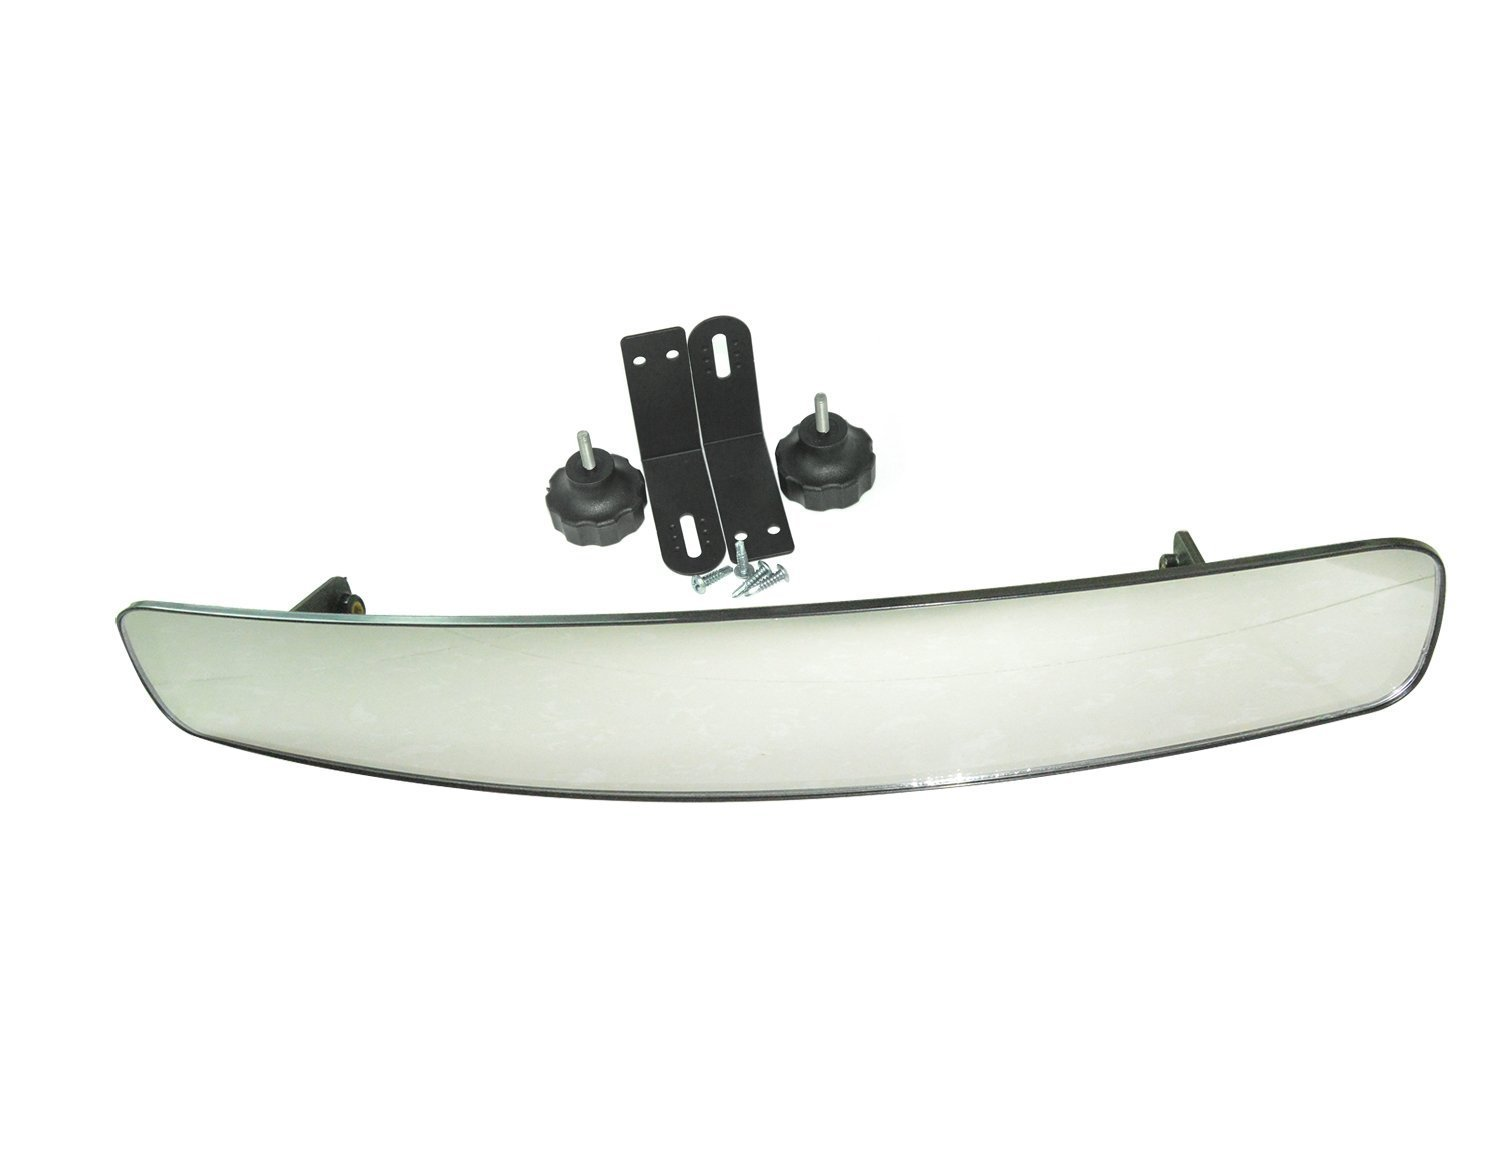 16.5'' Extra Wide Panoramic Rear View Mirror for Golf Carts Such As Ez Go, Club Car, Yamaha